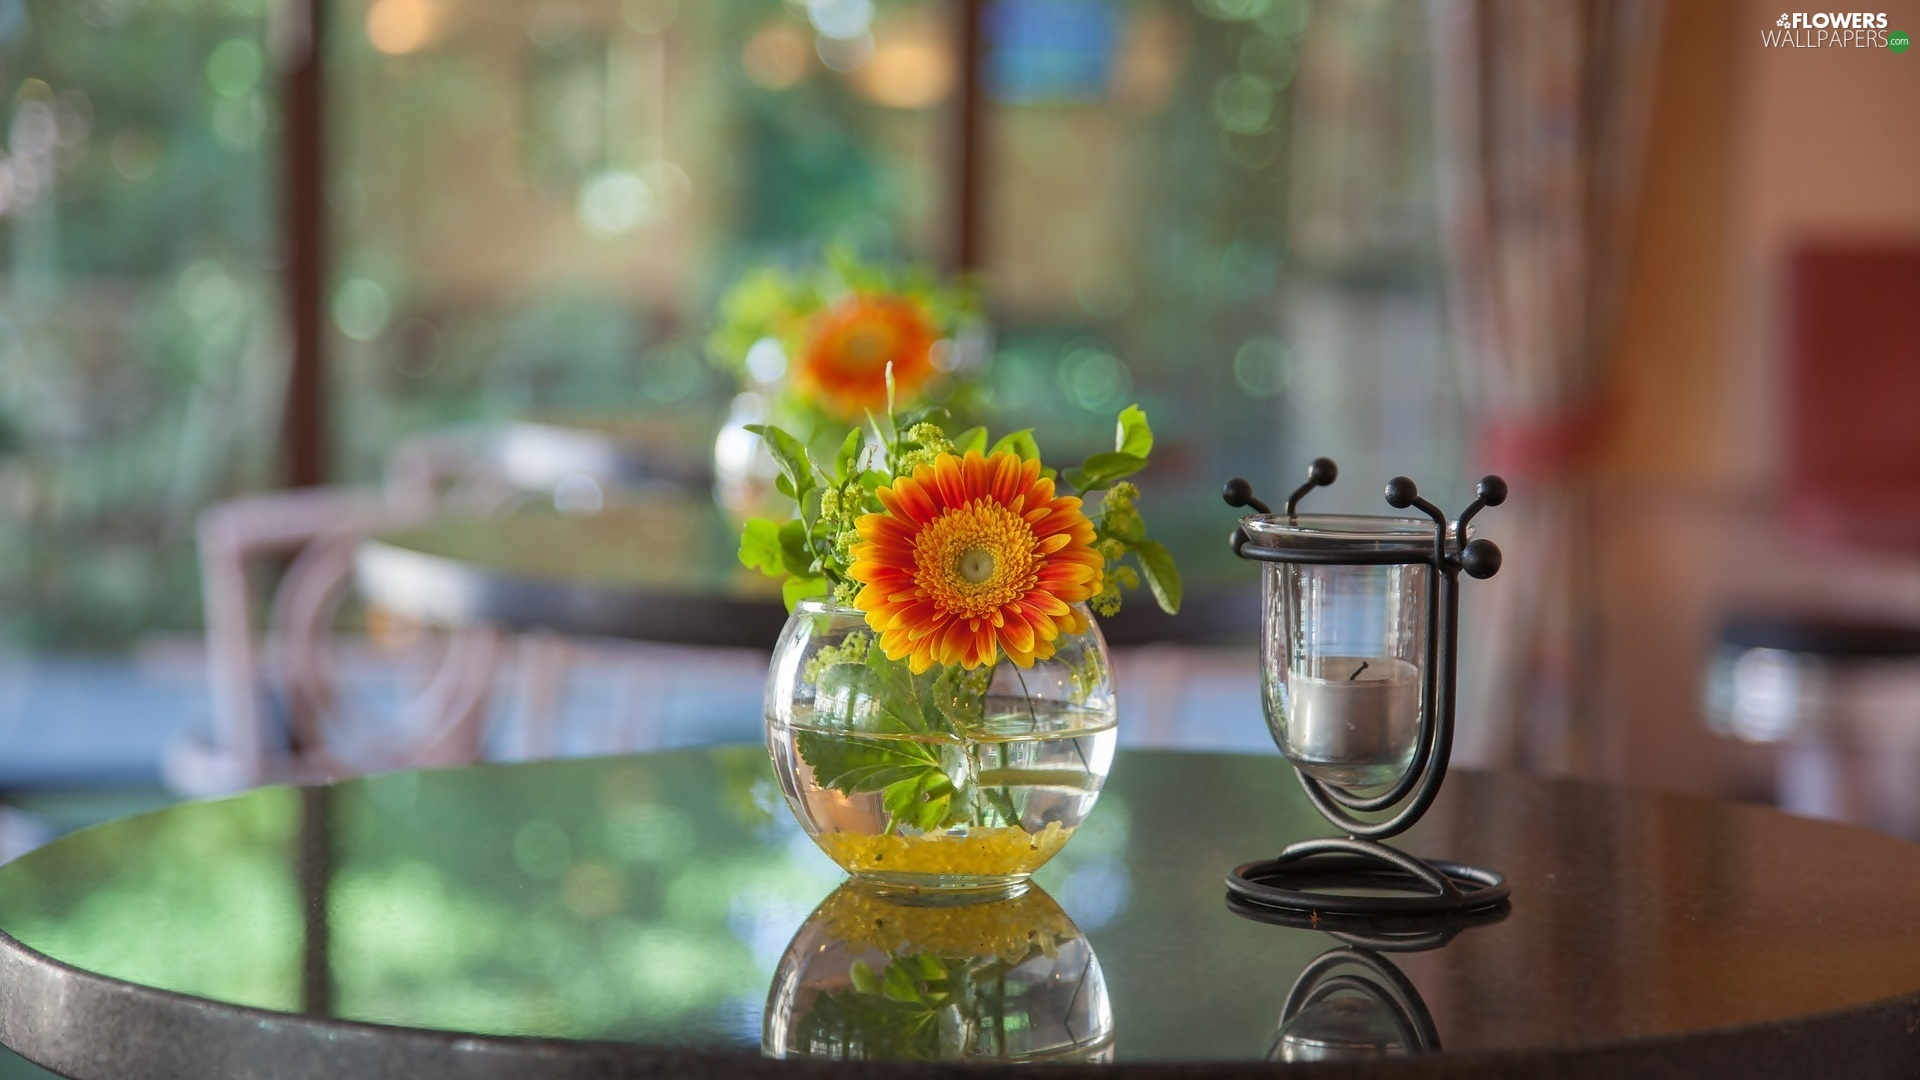 Candle, Gerbera, decoration, blurry background, vase